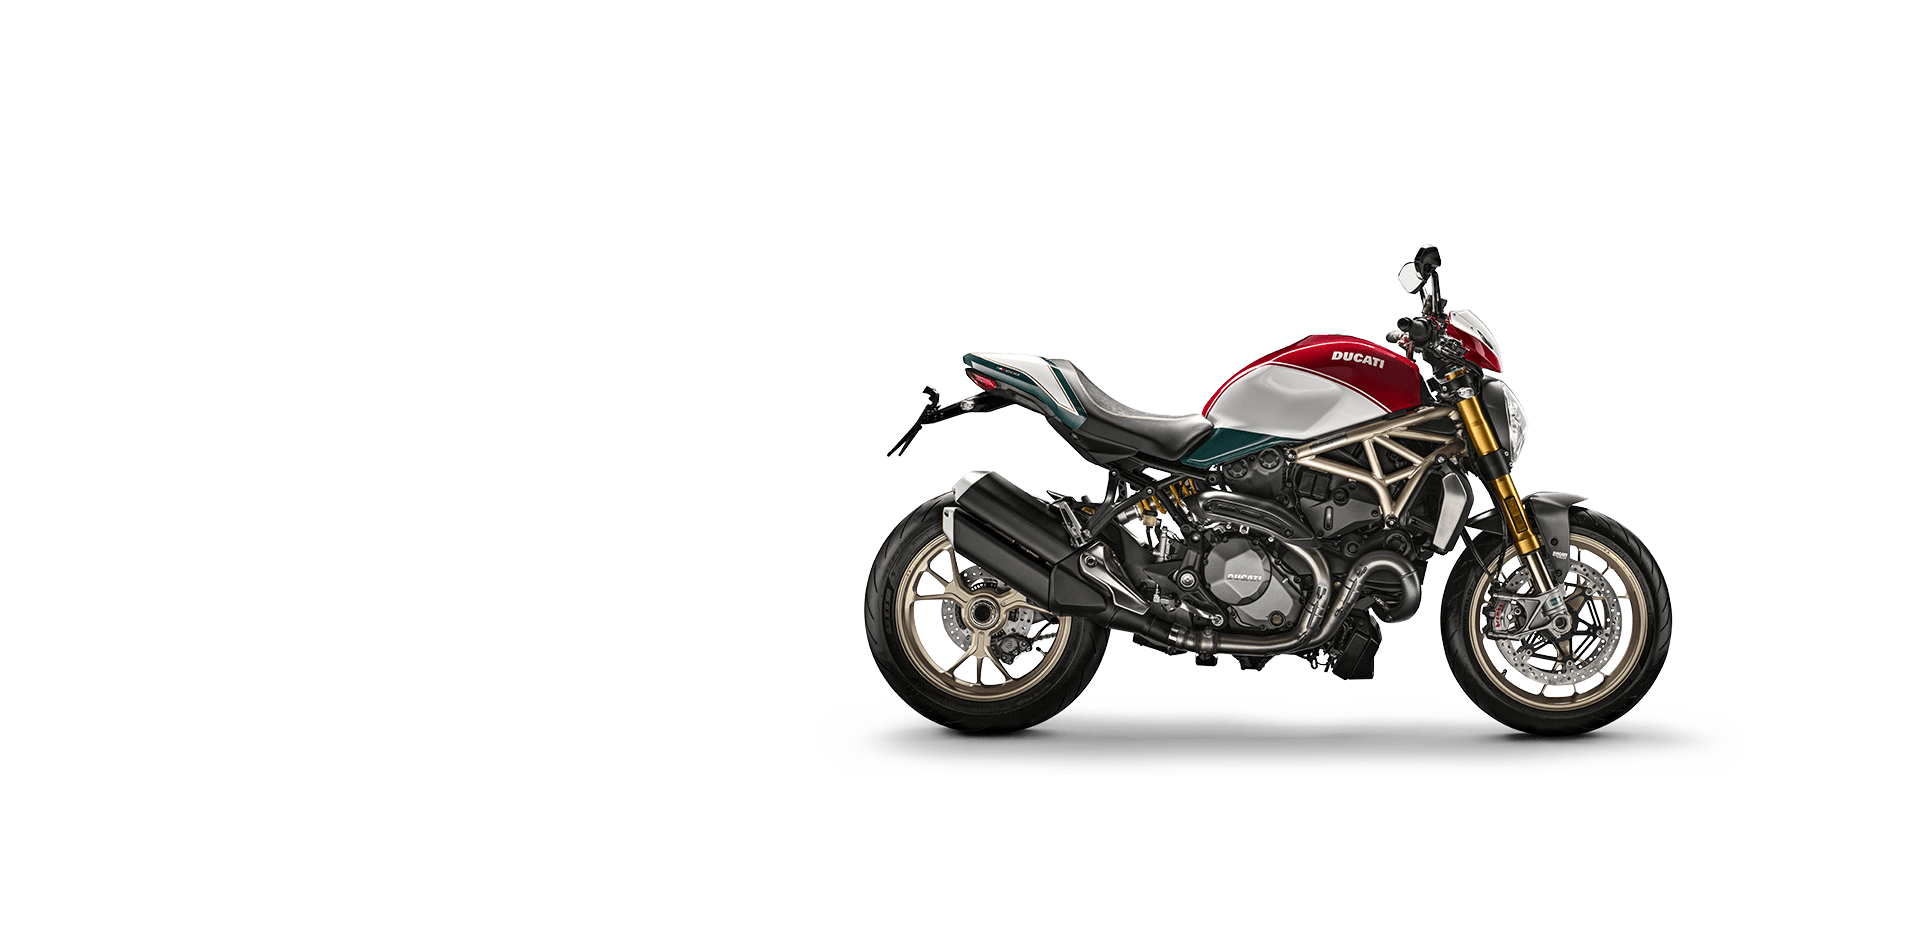 CocMotors DUCATI Monster Anniversario